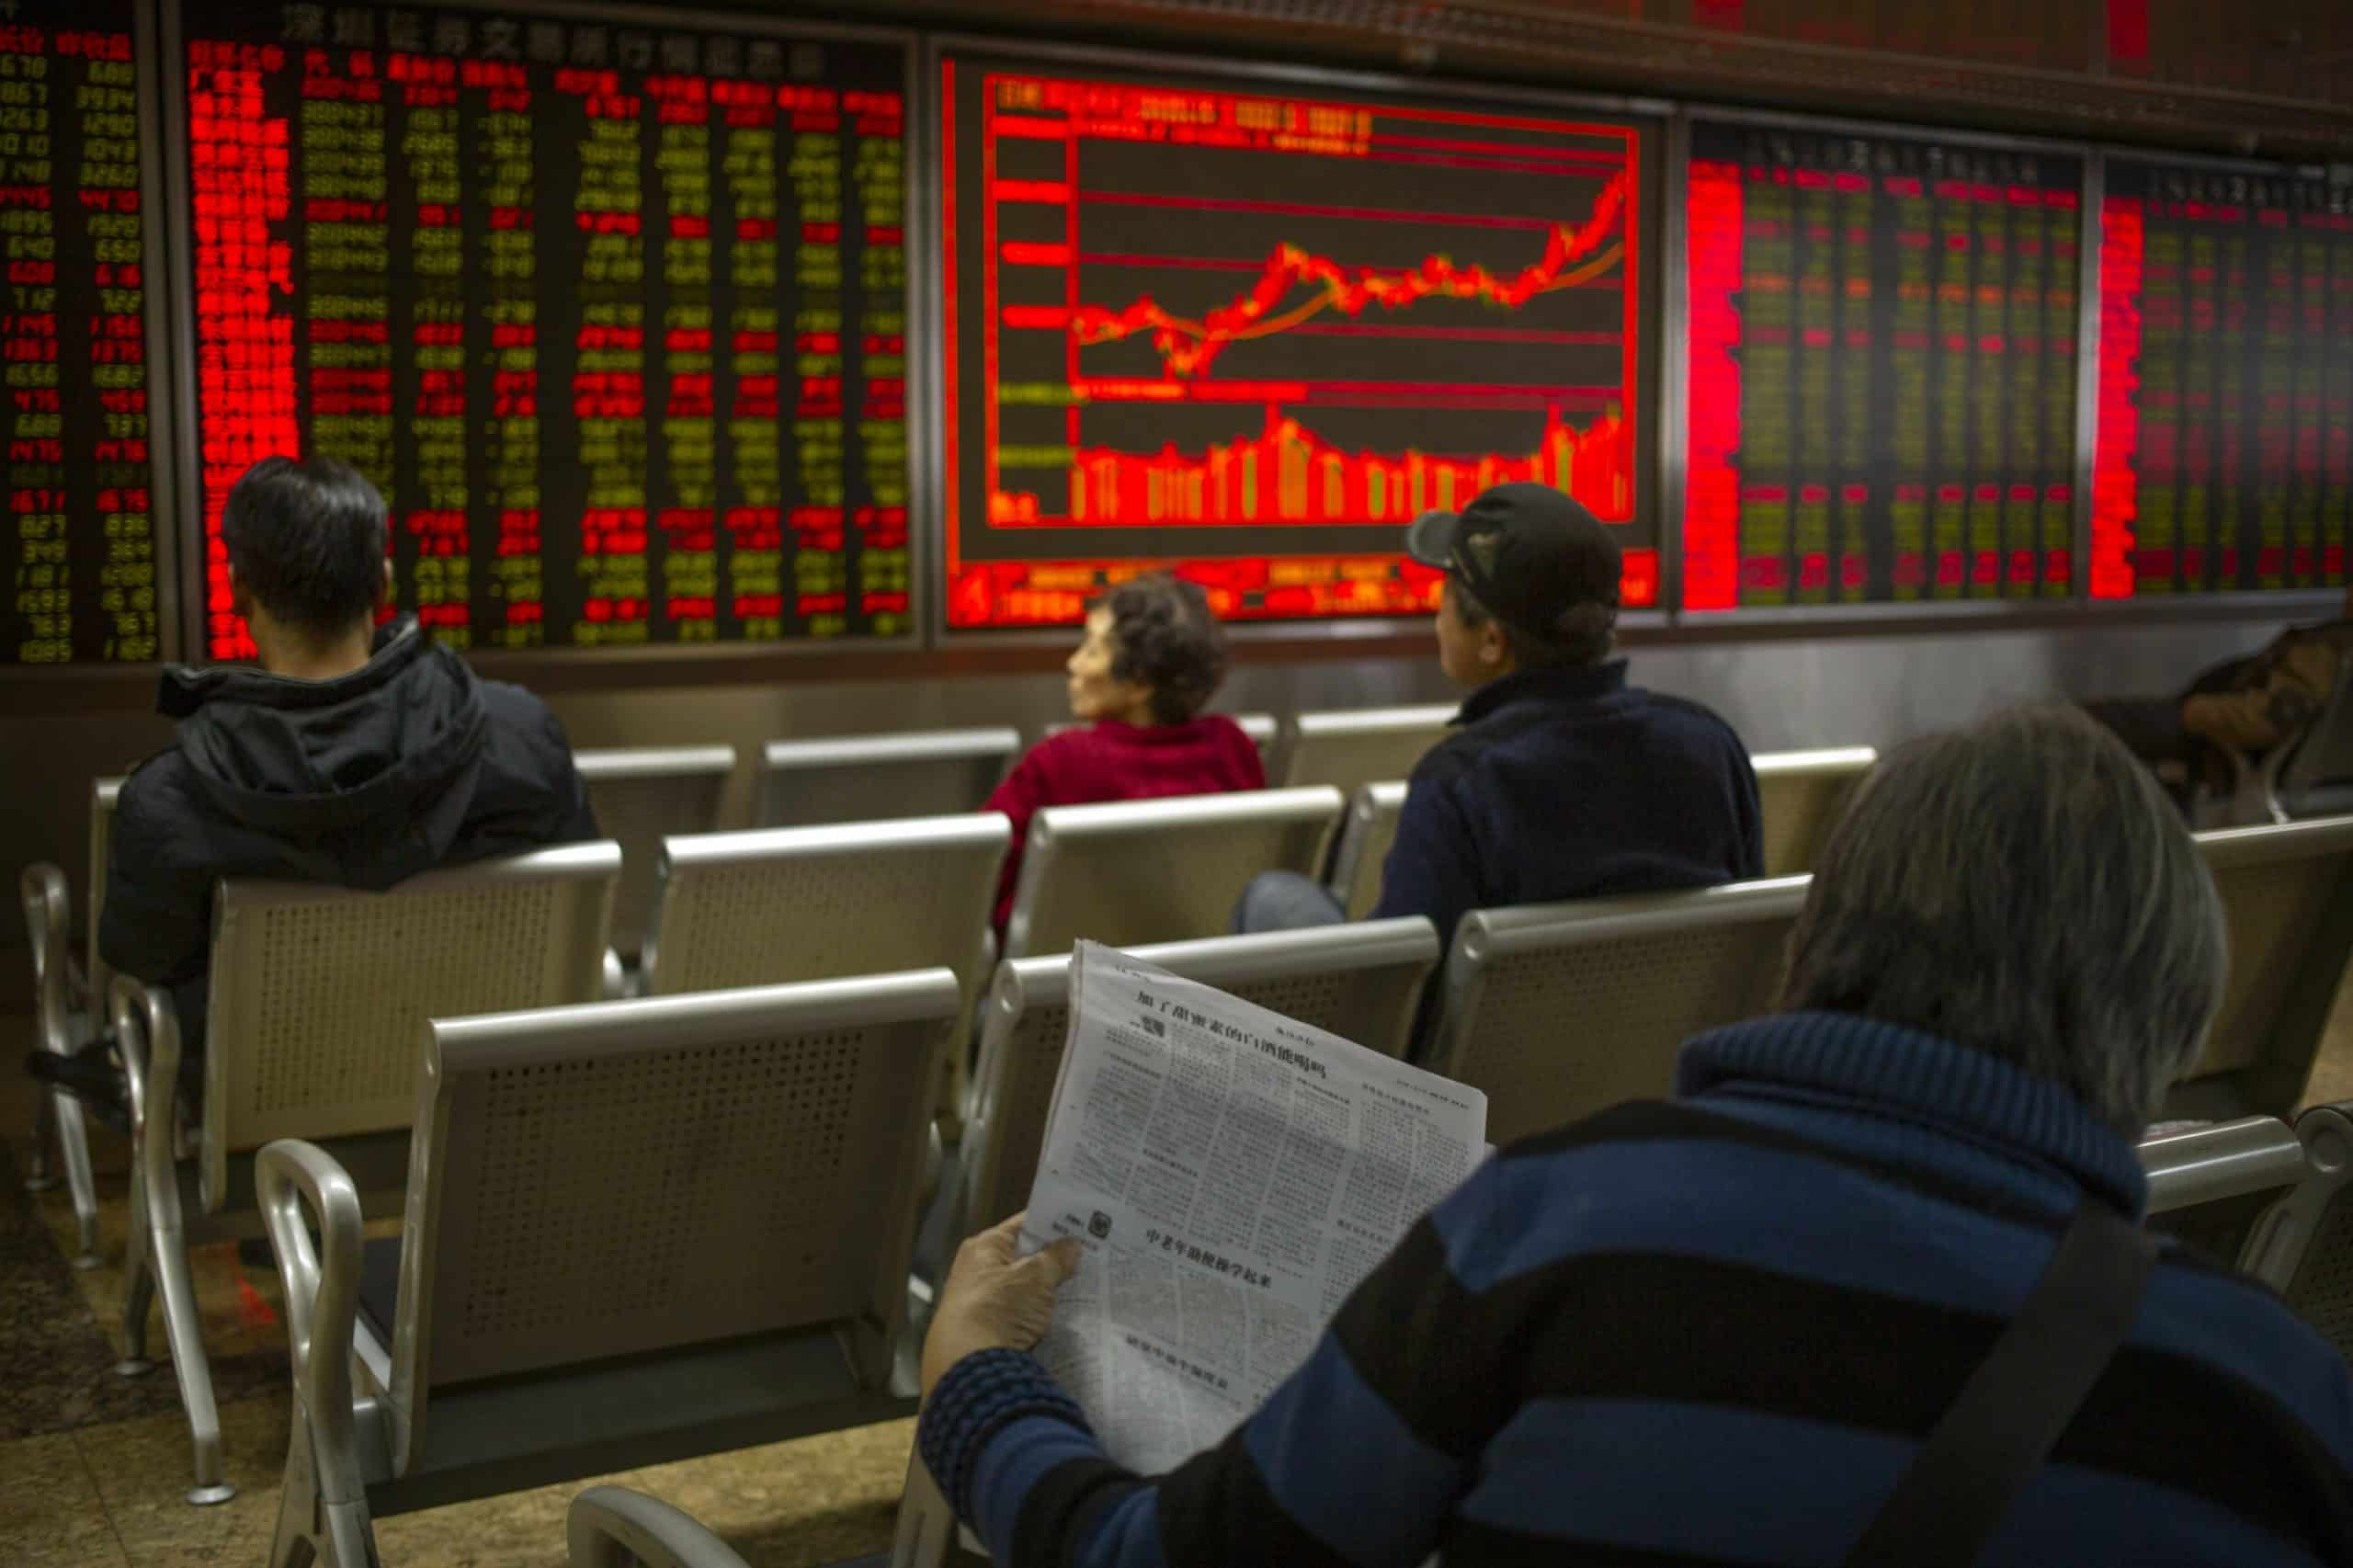 Global shares rise as worries recede on Iran, US tensions